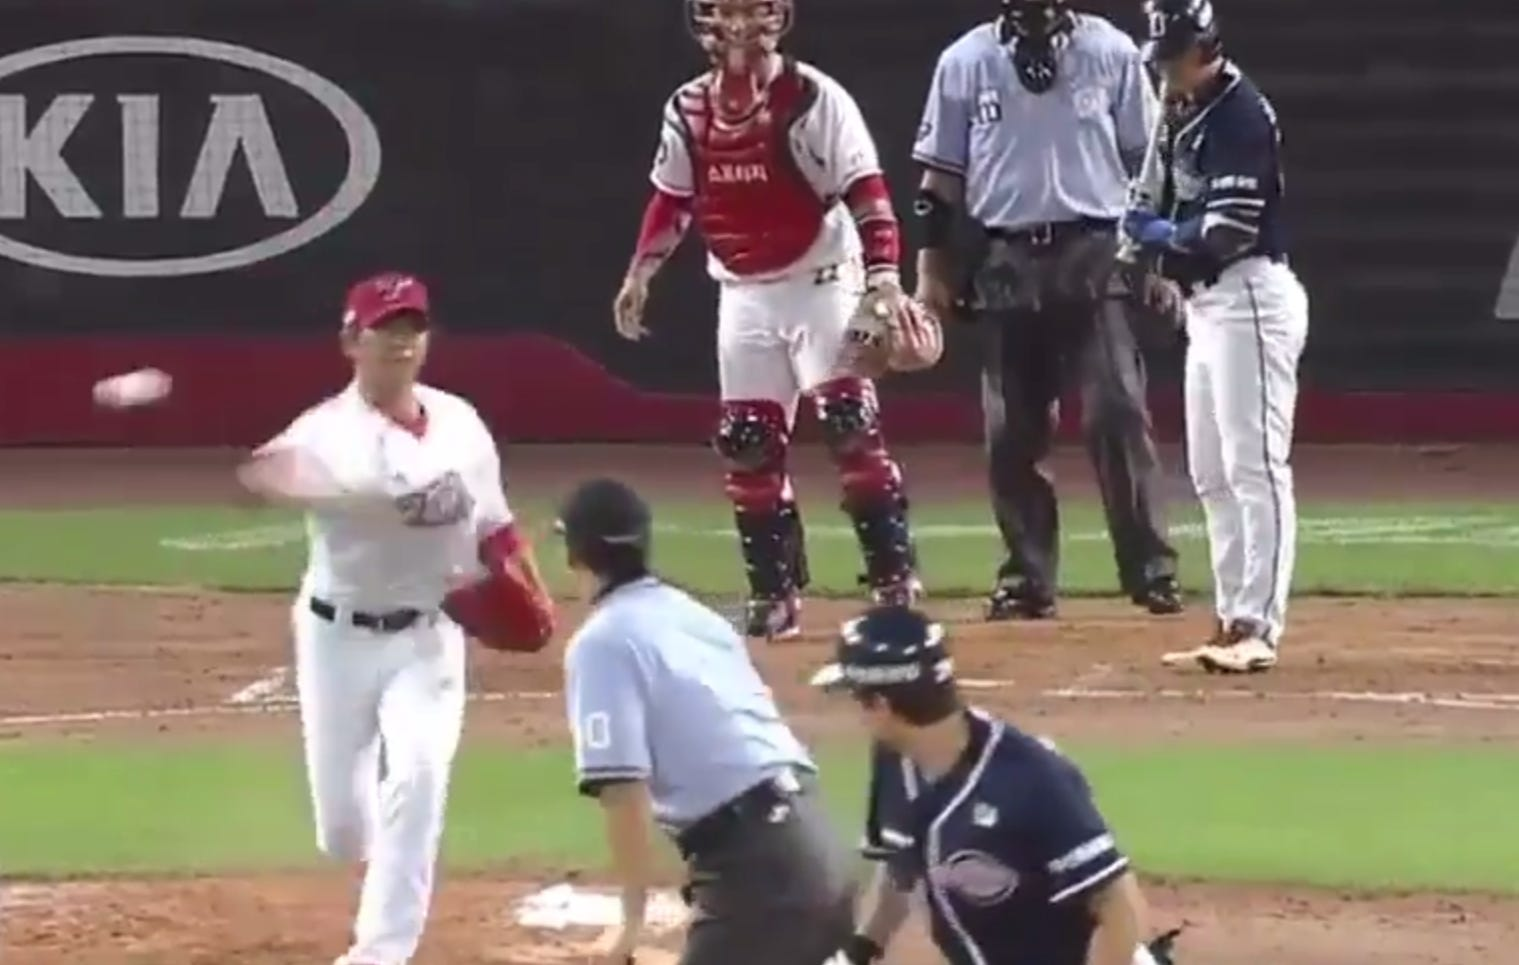 Korean Pitcher Tries To Peg Runner With His Pickoff Throw